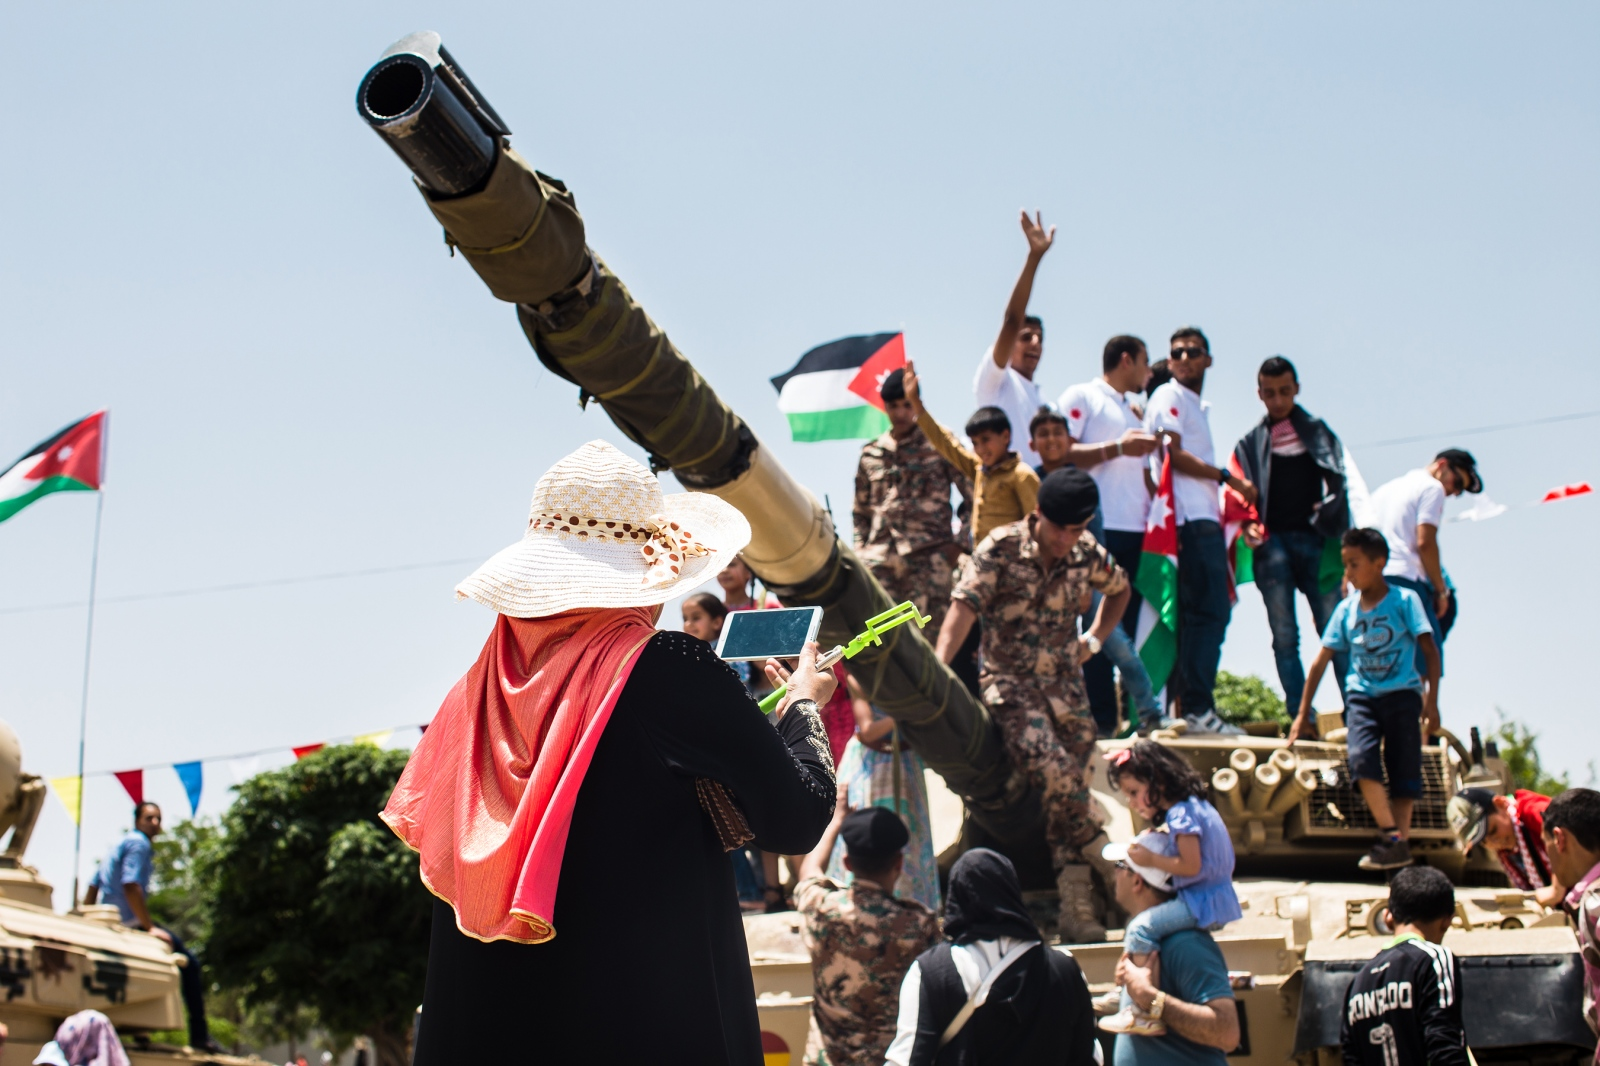 A Jordanian woman takes photos of family members and soldiers posing atop a tank at a celebration of the centennial of the Great Arab Revolt in Amman, Jordan on June 3, 2016.